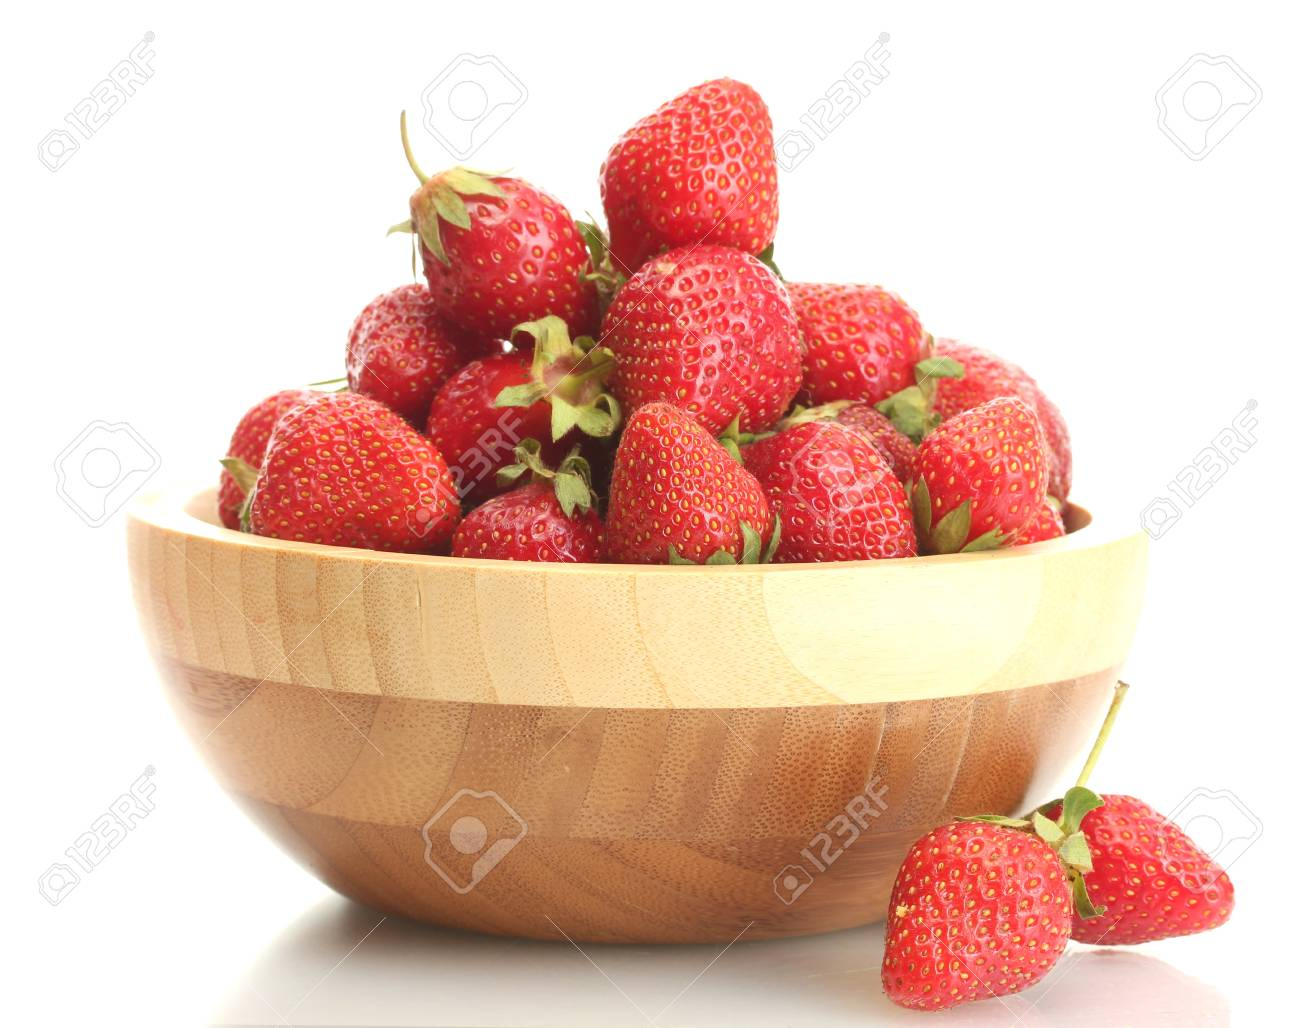 sweet ripe strawberries in wooden bowl isolated on white Stock Photo - 13978555